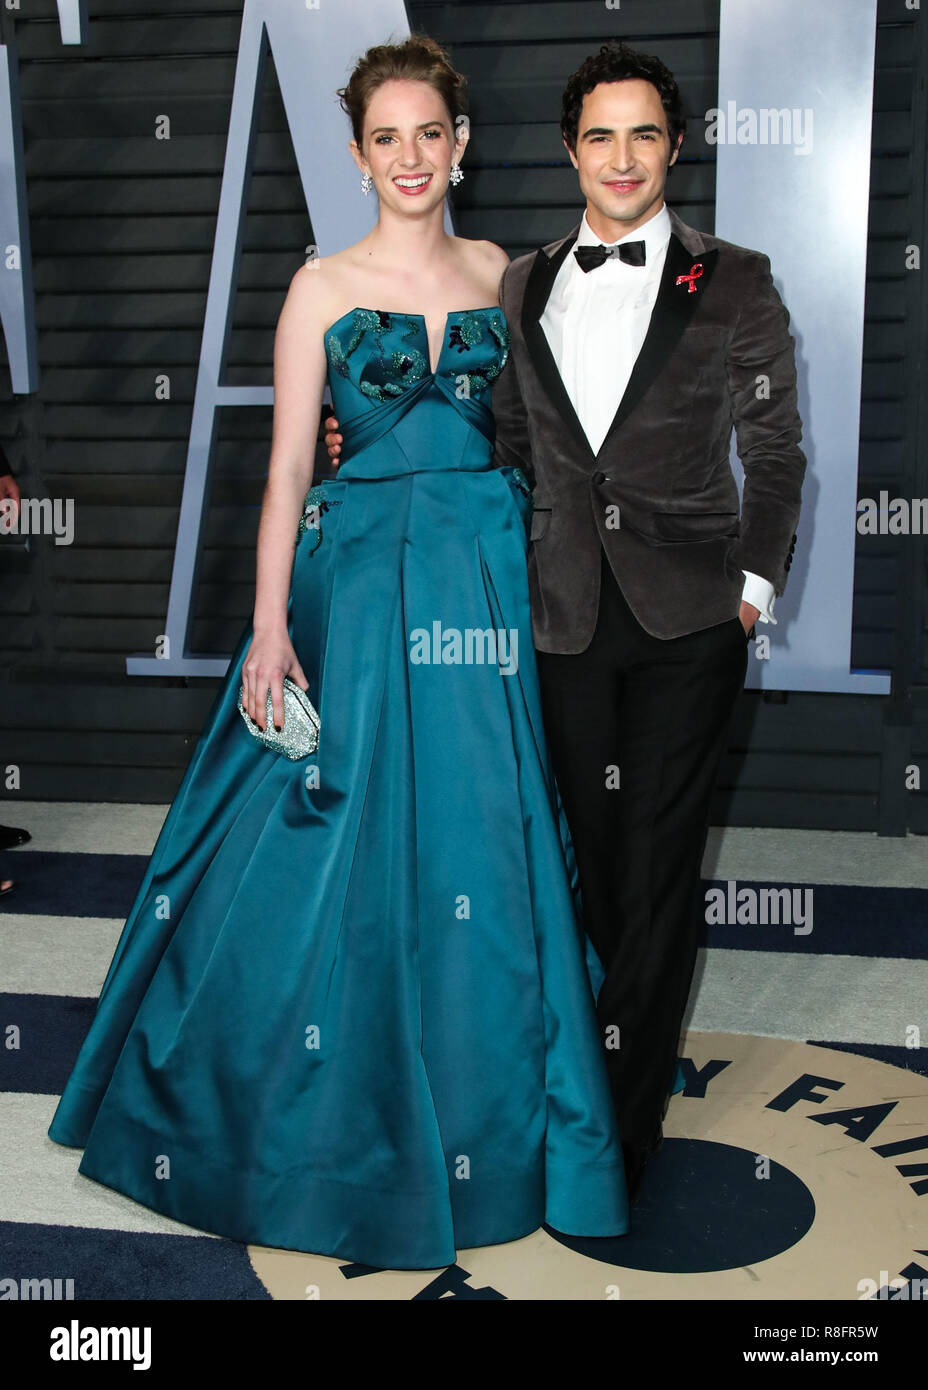 BEVERLY HILLS, LOS ANGELES, CA, USA - MARCH 04: Maya Hawke, Zac Posen at the 2018 Vanity Fair Oscar Party held at the Wallis Annenberg Center for the Performing Arts on March 4, 2018 in Beverly Hills, Los Angeles, California, United States. (Photo by Xavier Collin/Image Press Agency) Stock Photo